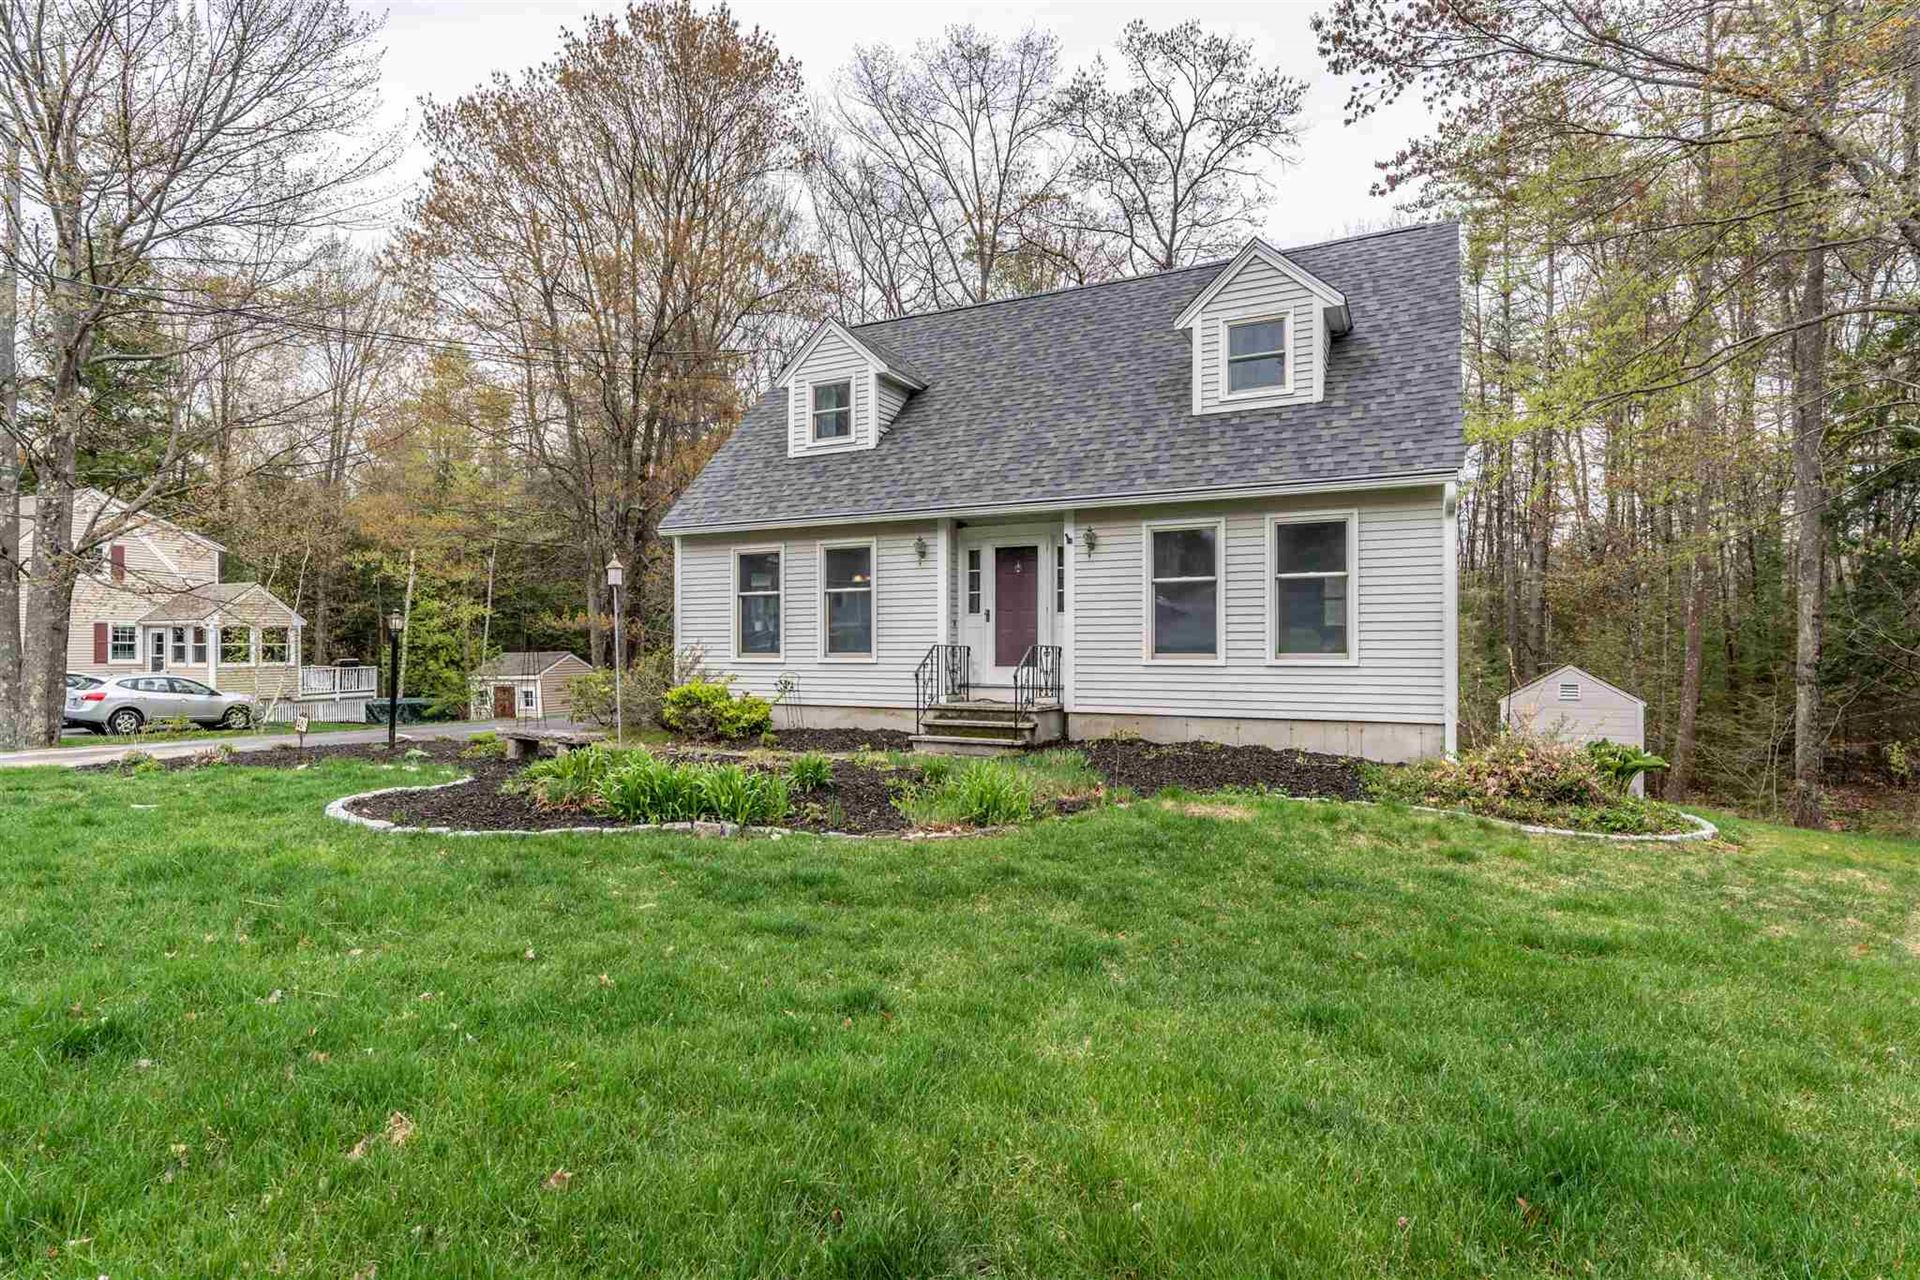 46 Ledgeview Drive, Rochester, NH 03839 - MLS#: 4860577